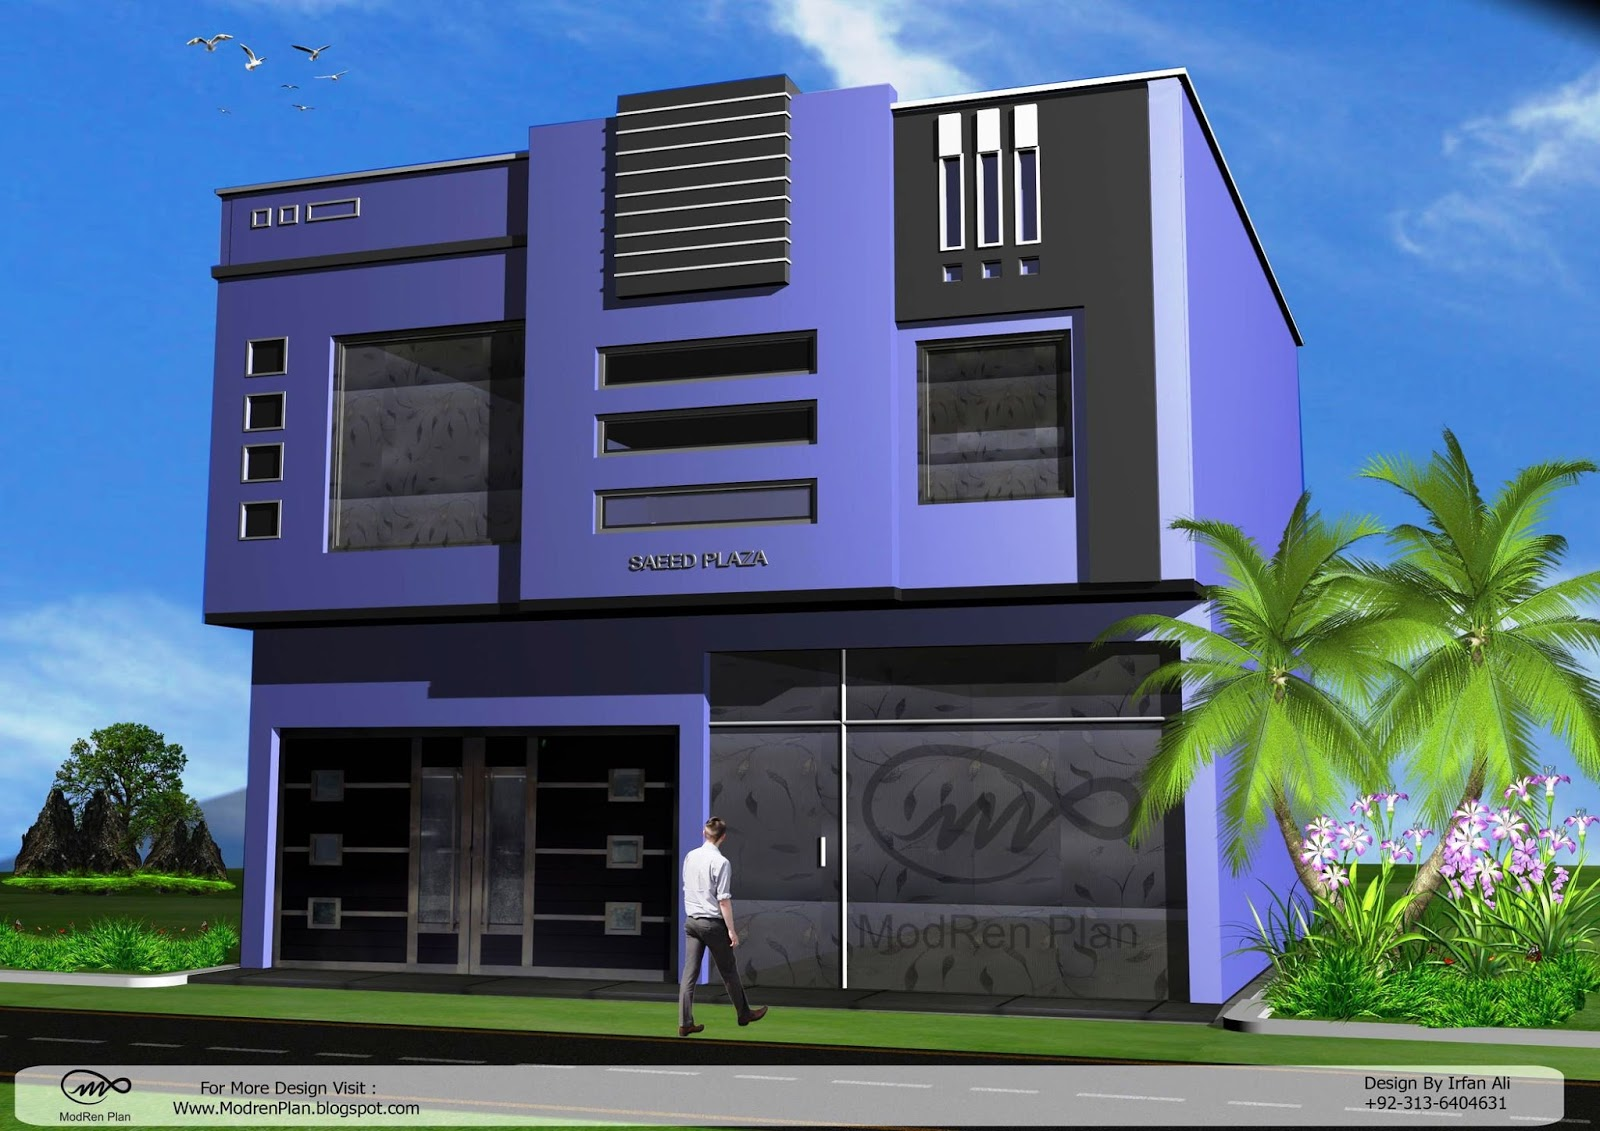 Office Building Elevation : Modern commercial building designs and plaza front elevation